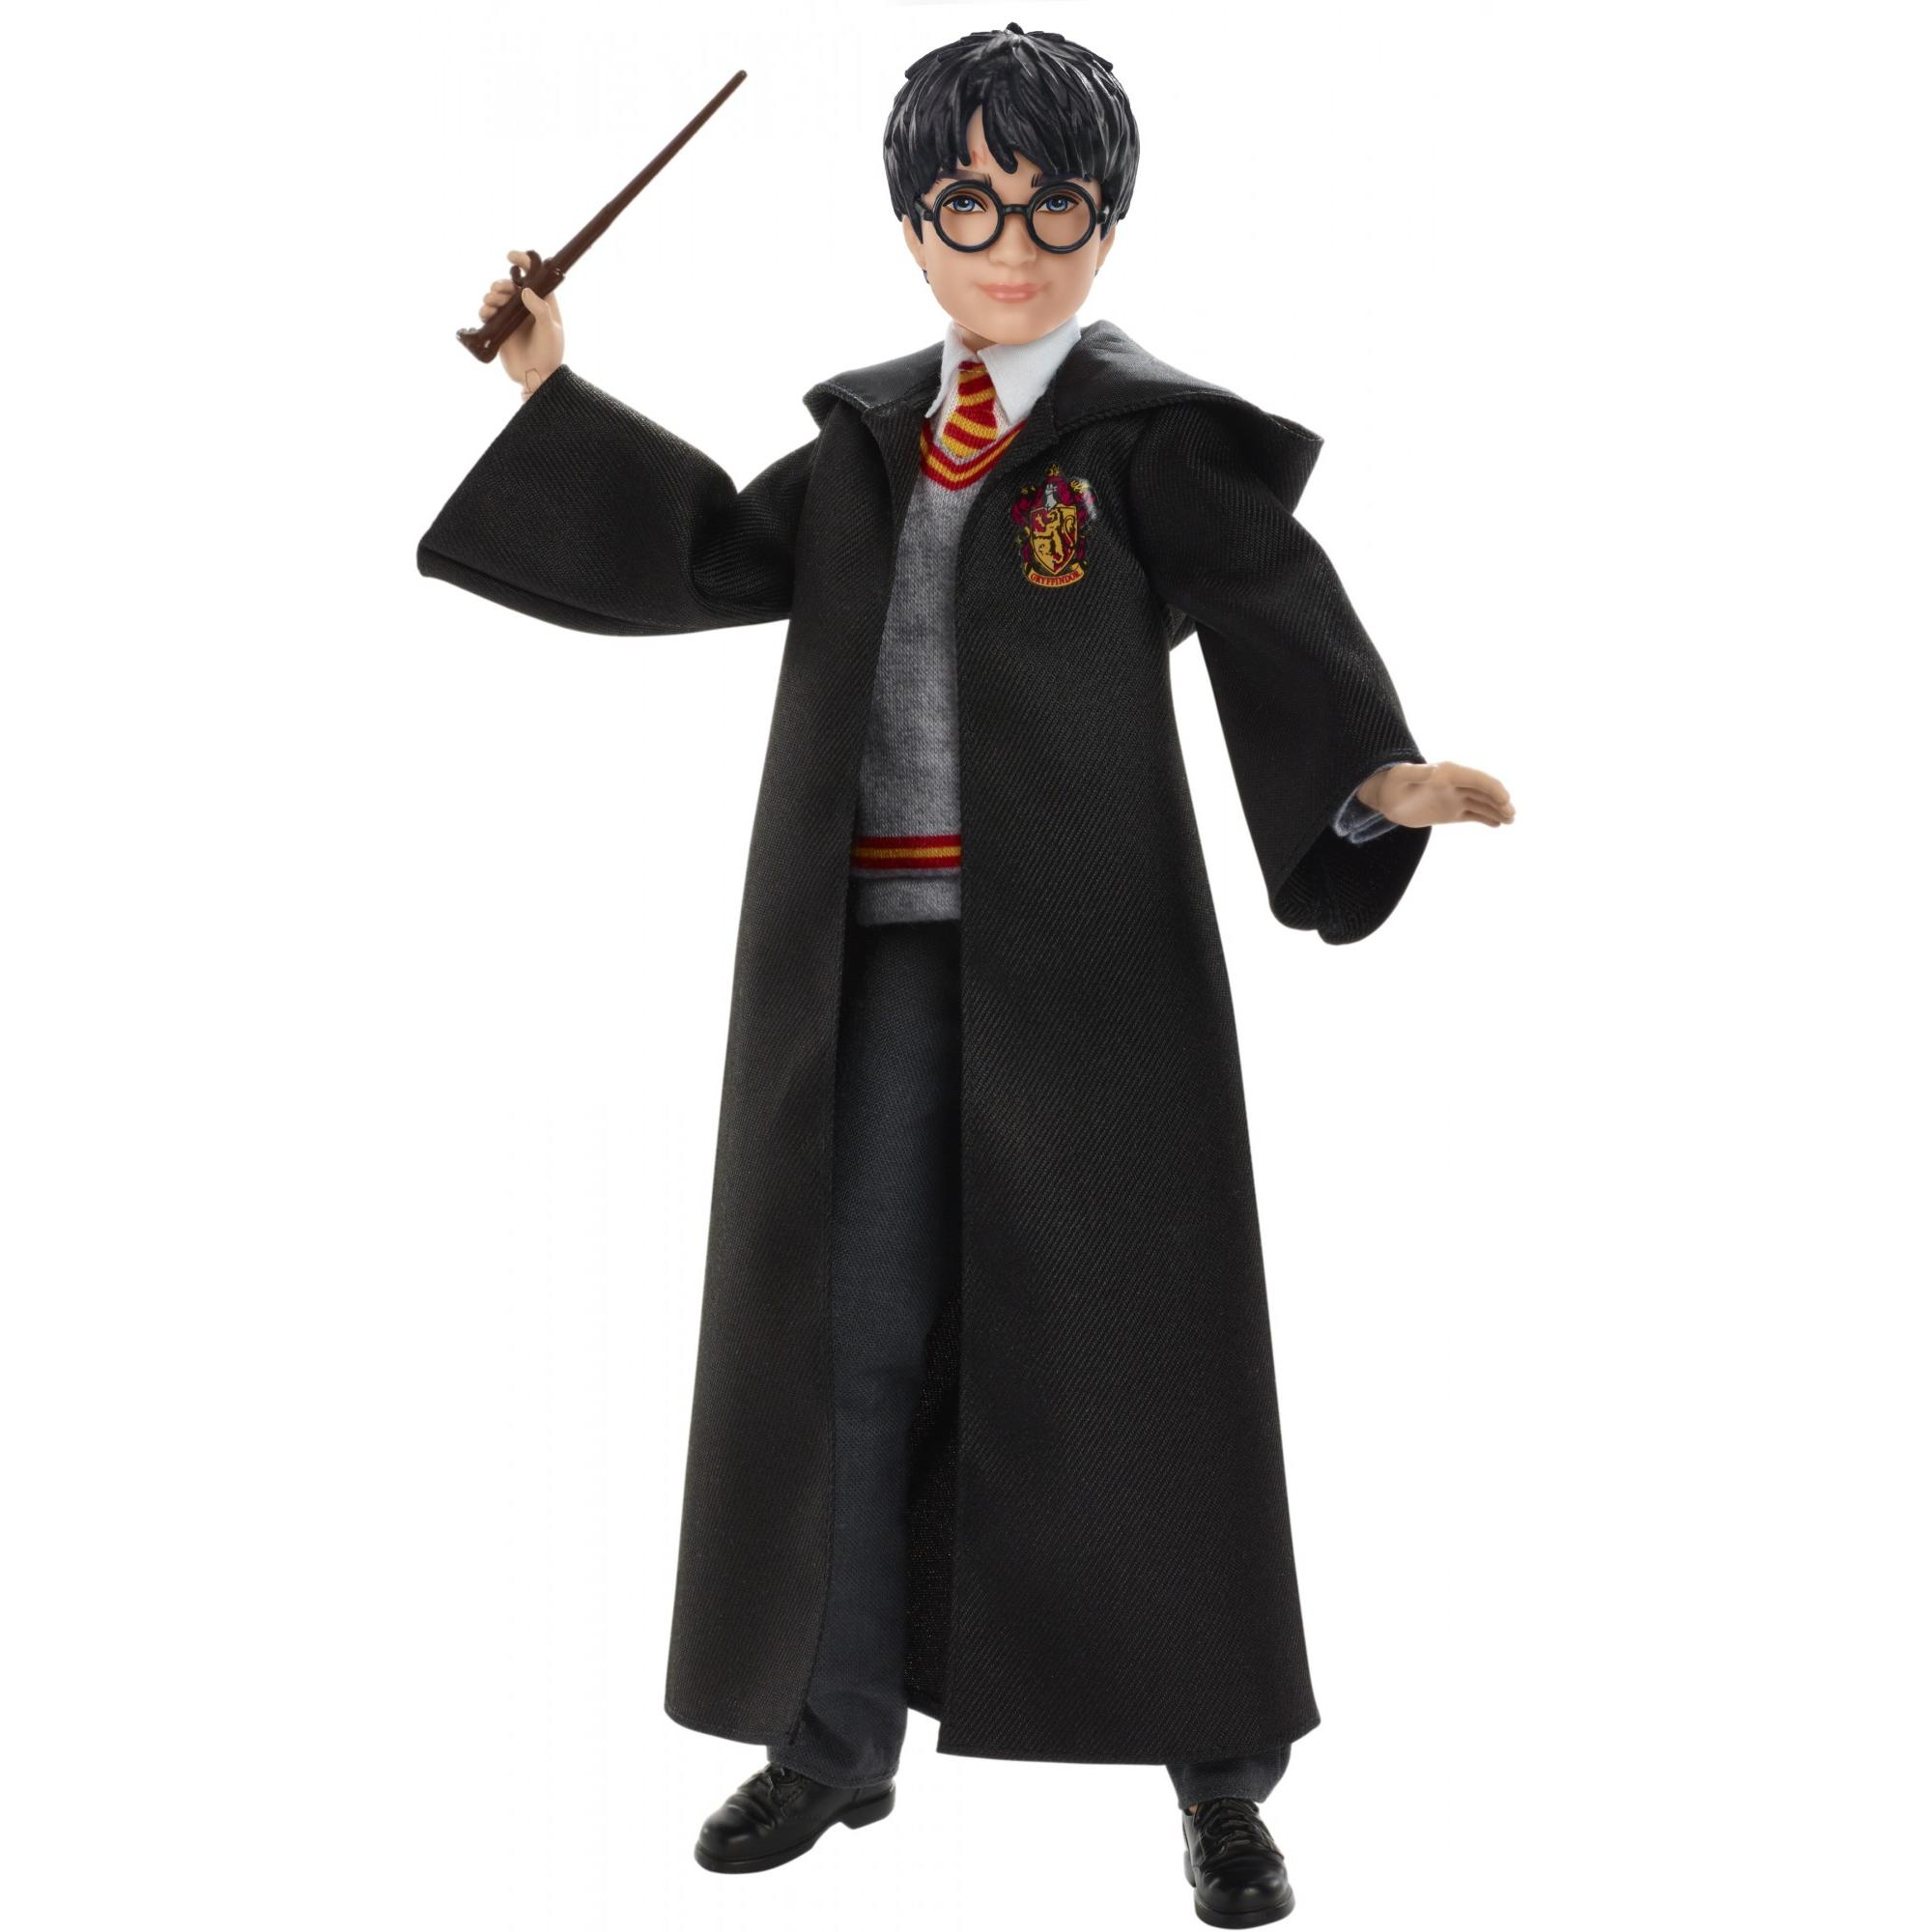 Harry Potter Harry Potter Film-Inspired Doll for Ages 6Y+